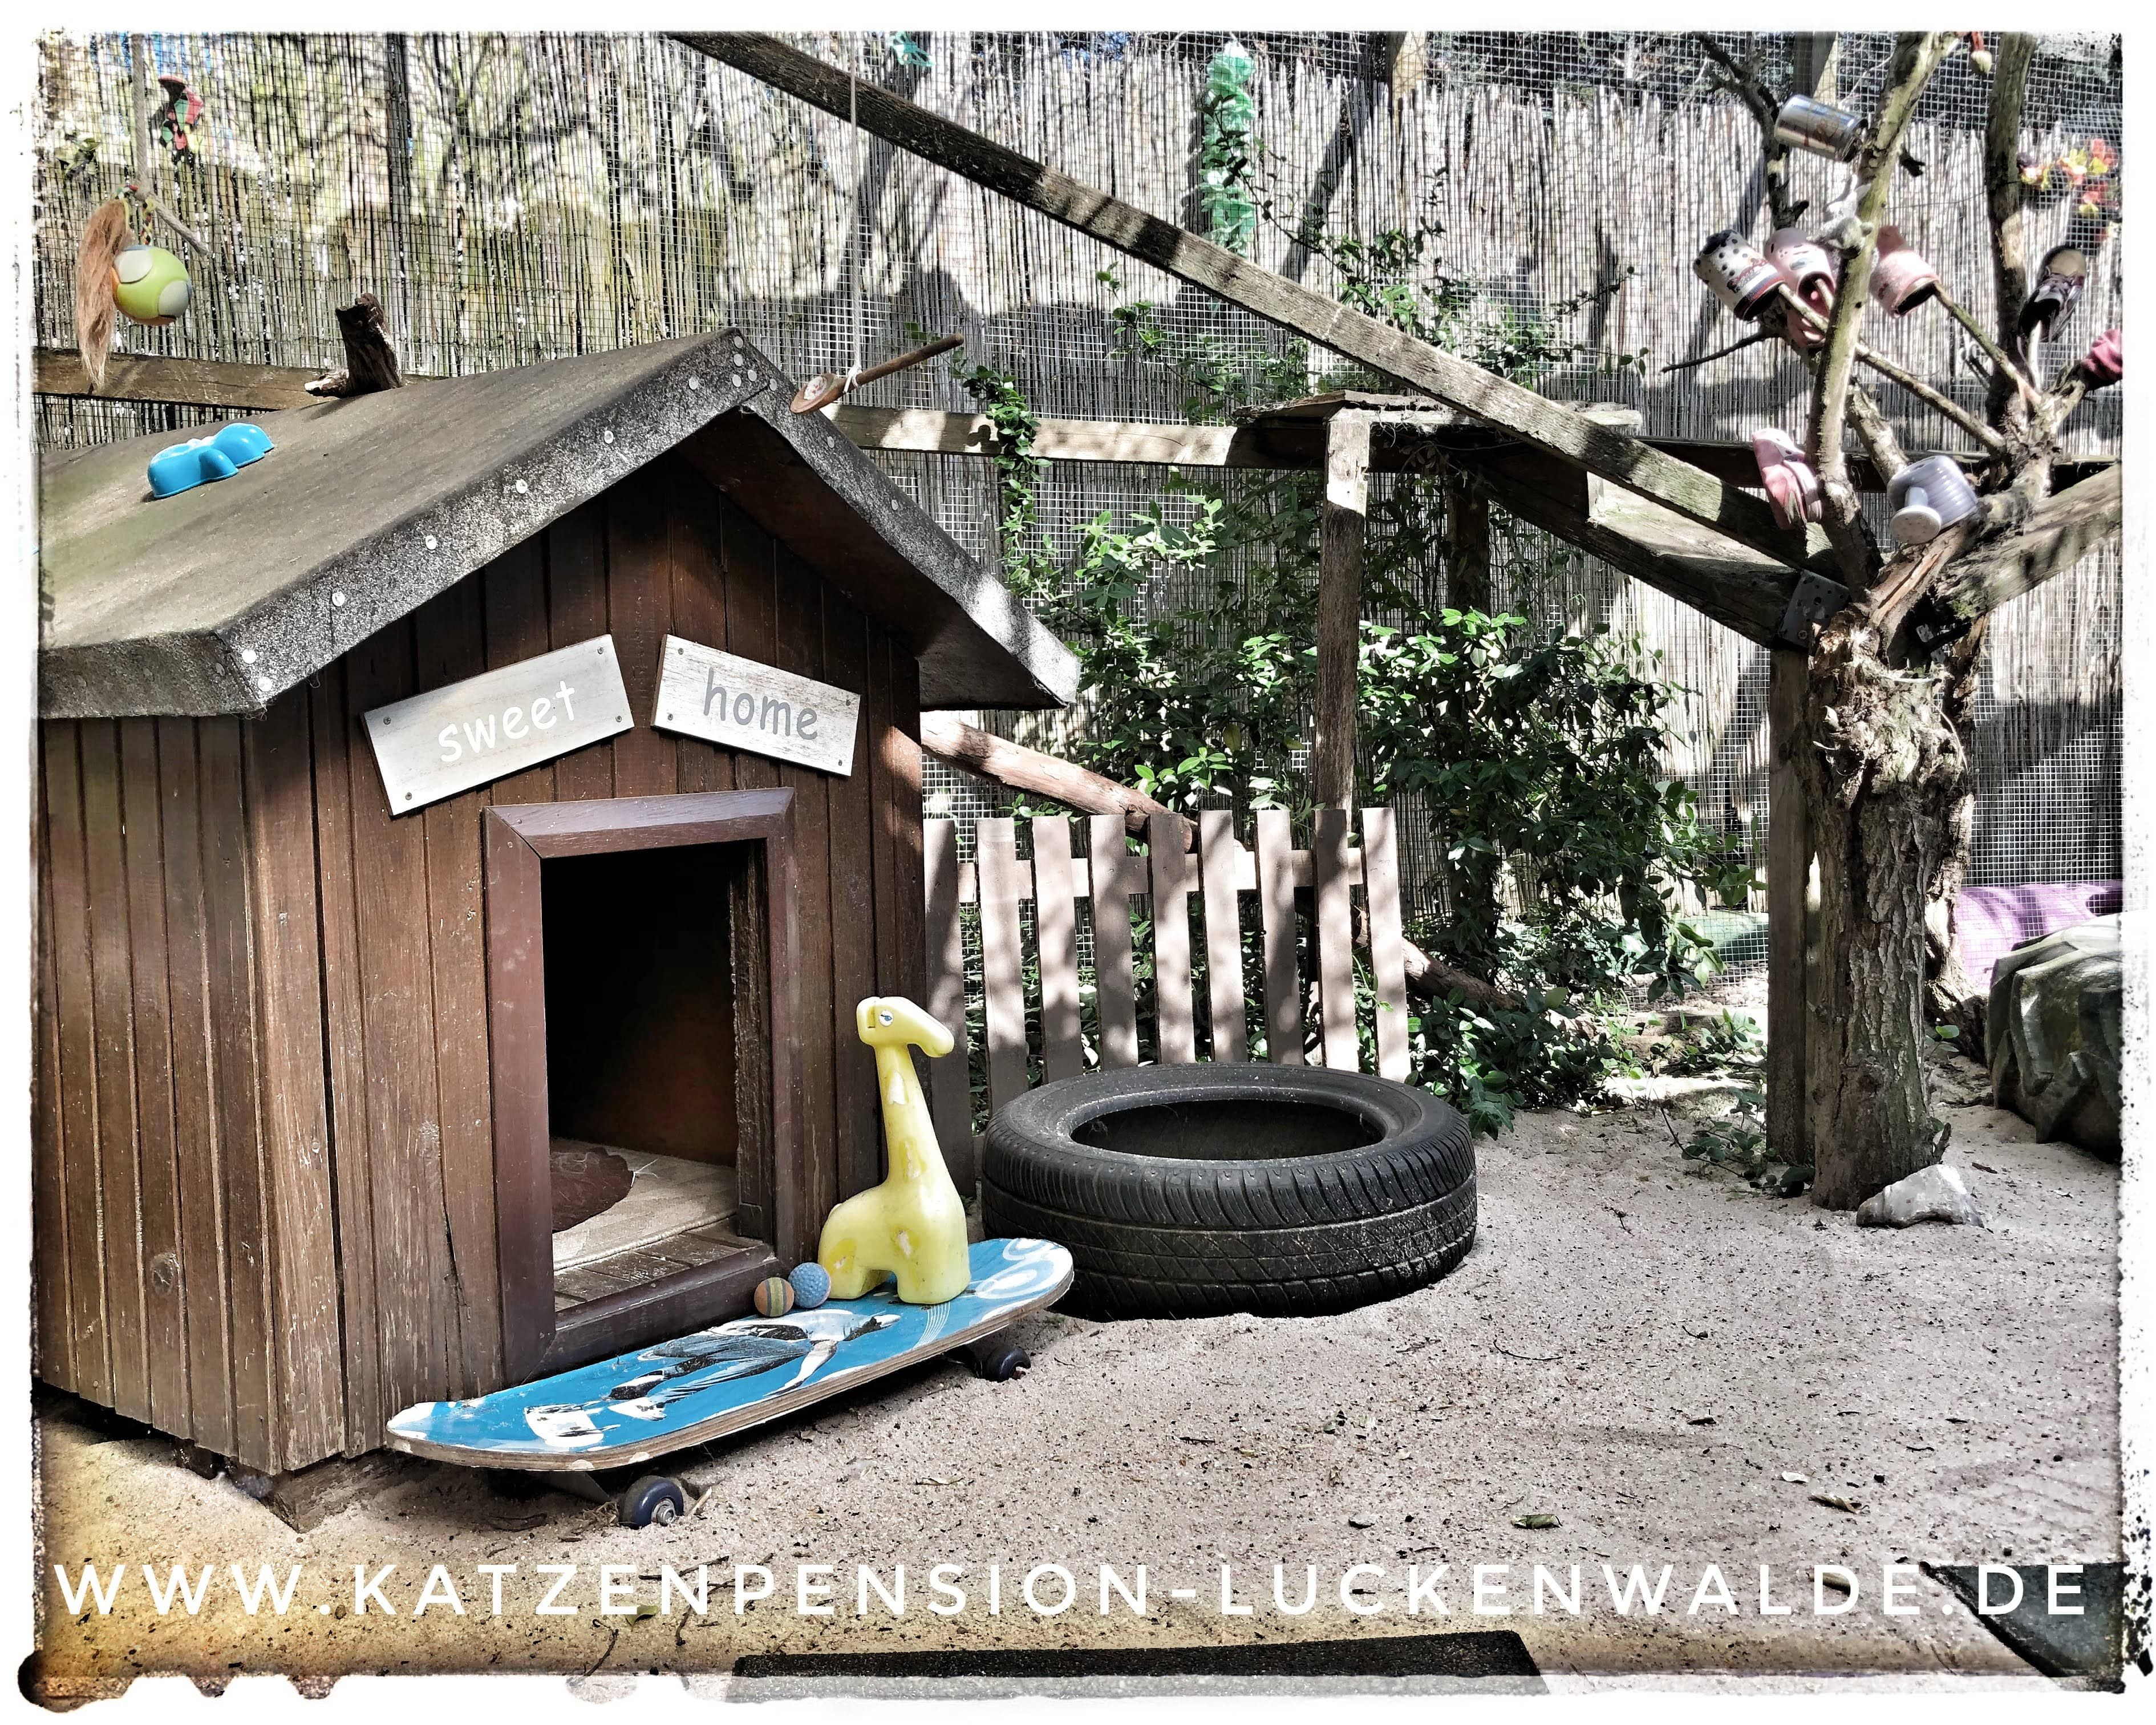 ####h1### - IMG 9506 min - Katzenpension - Tierpension - Tierbetreuung